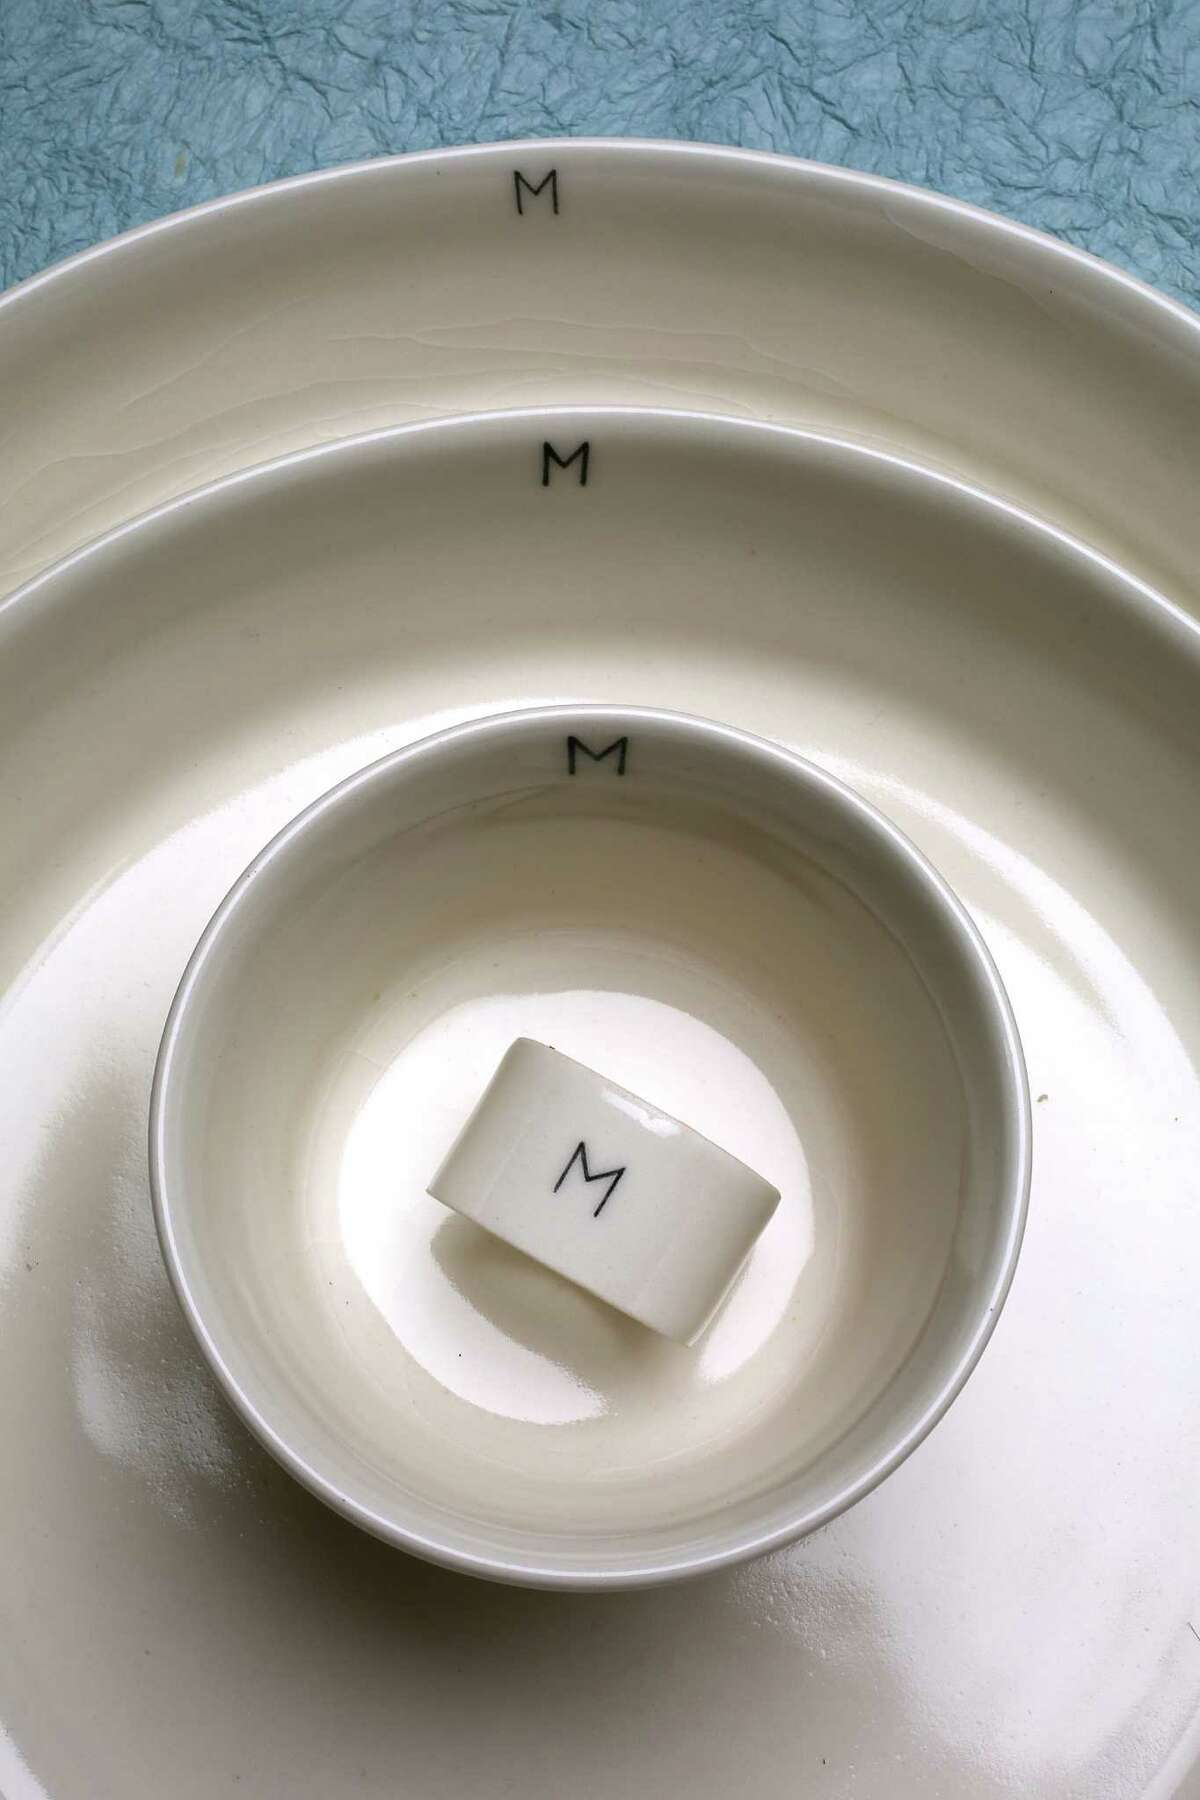 March's new porcelain dinnerware pieces are handmade and hand-painted, requiring a 15-week lead time.